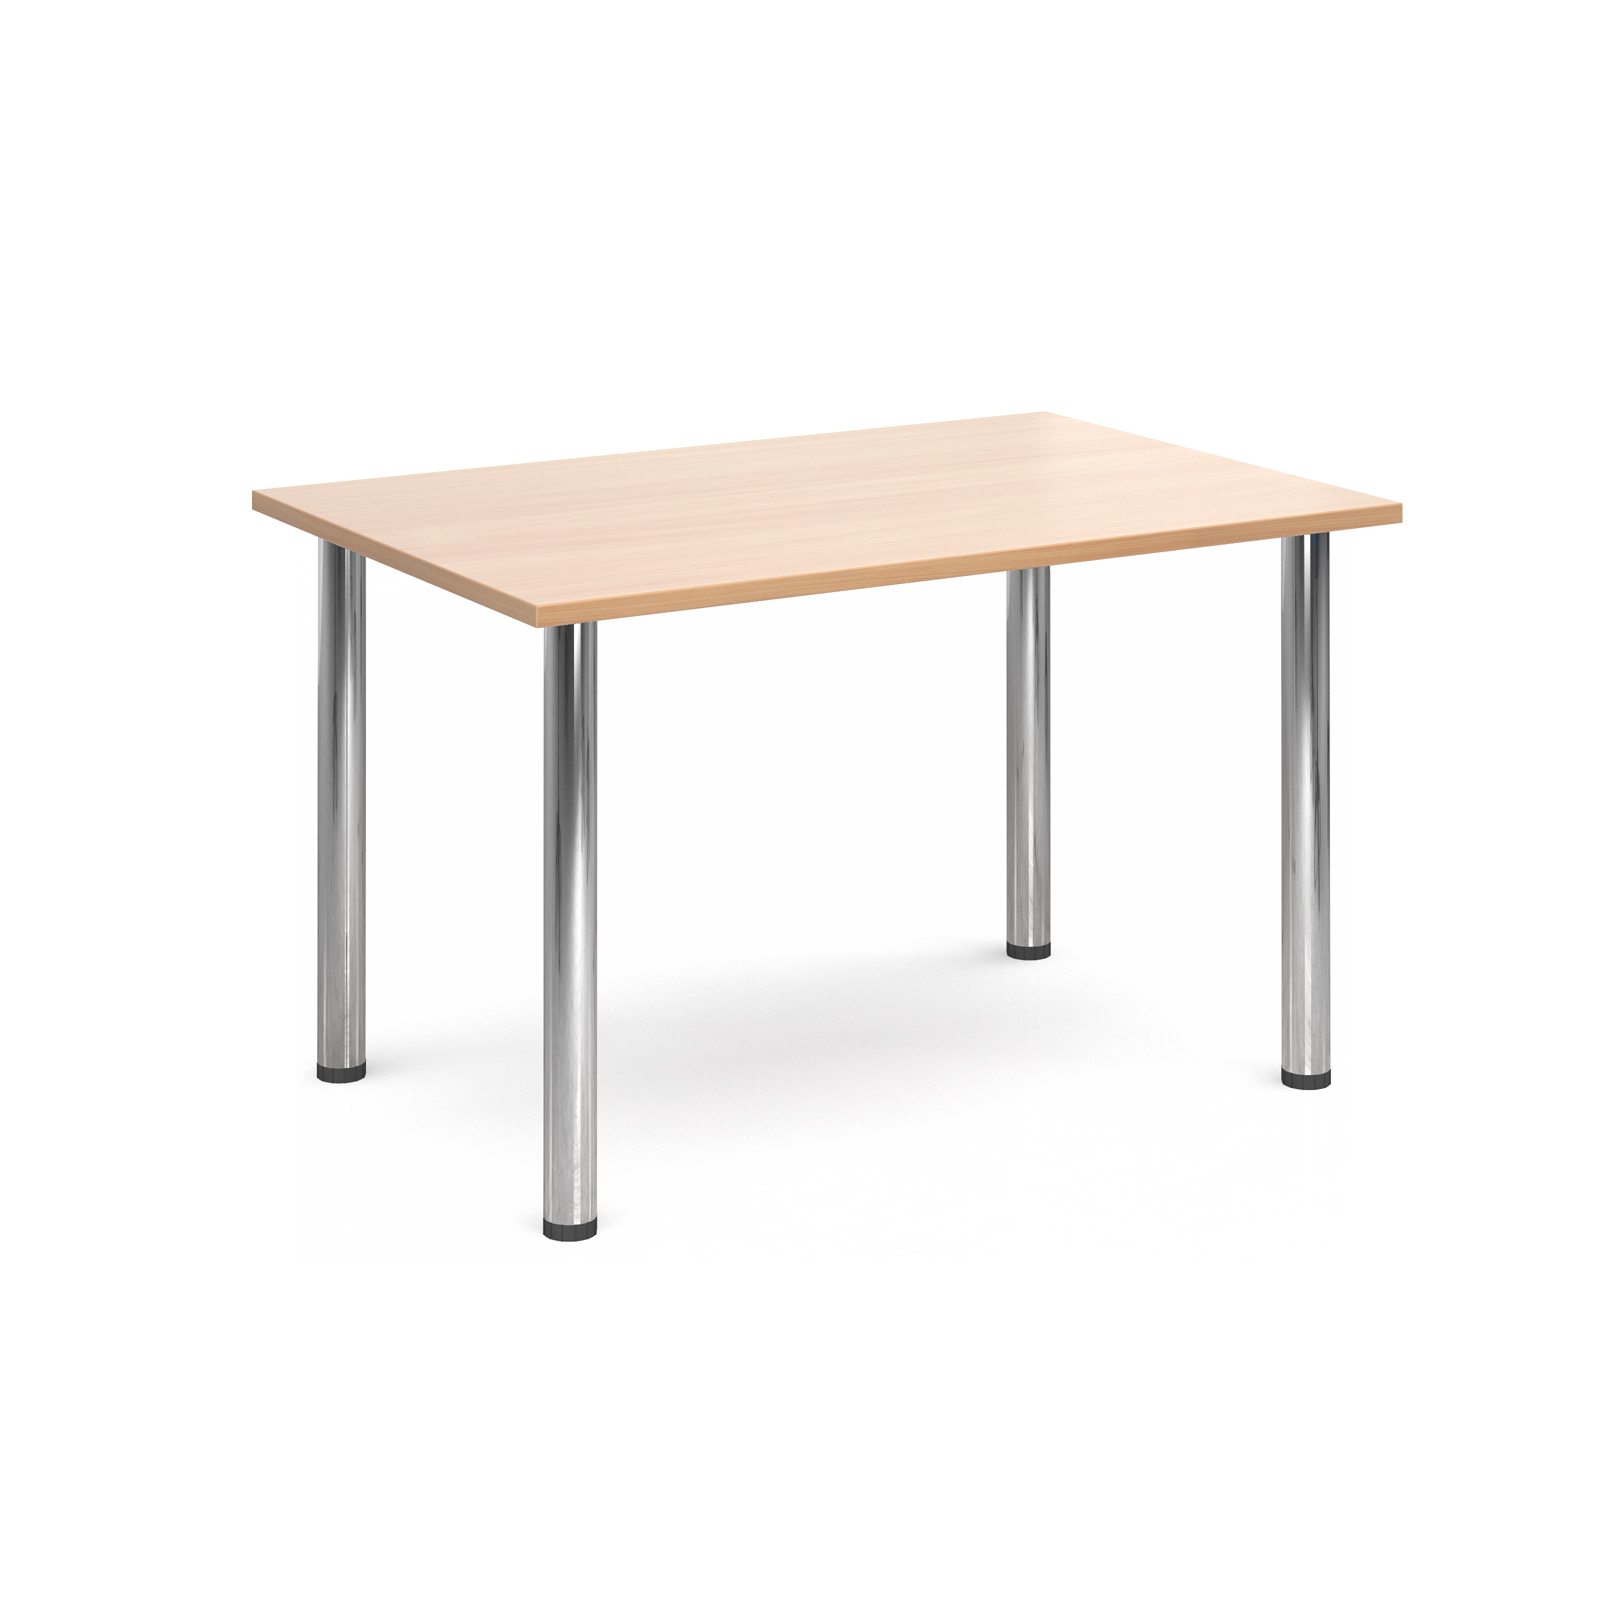 1300 Flexi table Chrome radial Legs-Beech